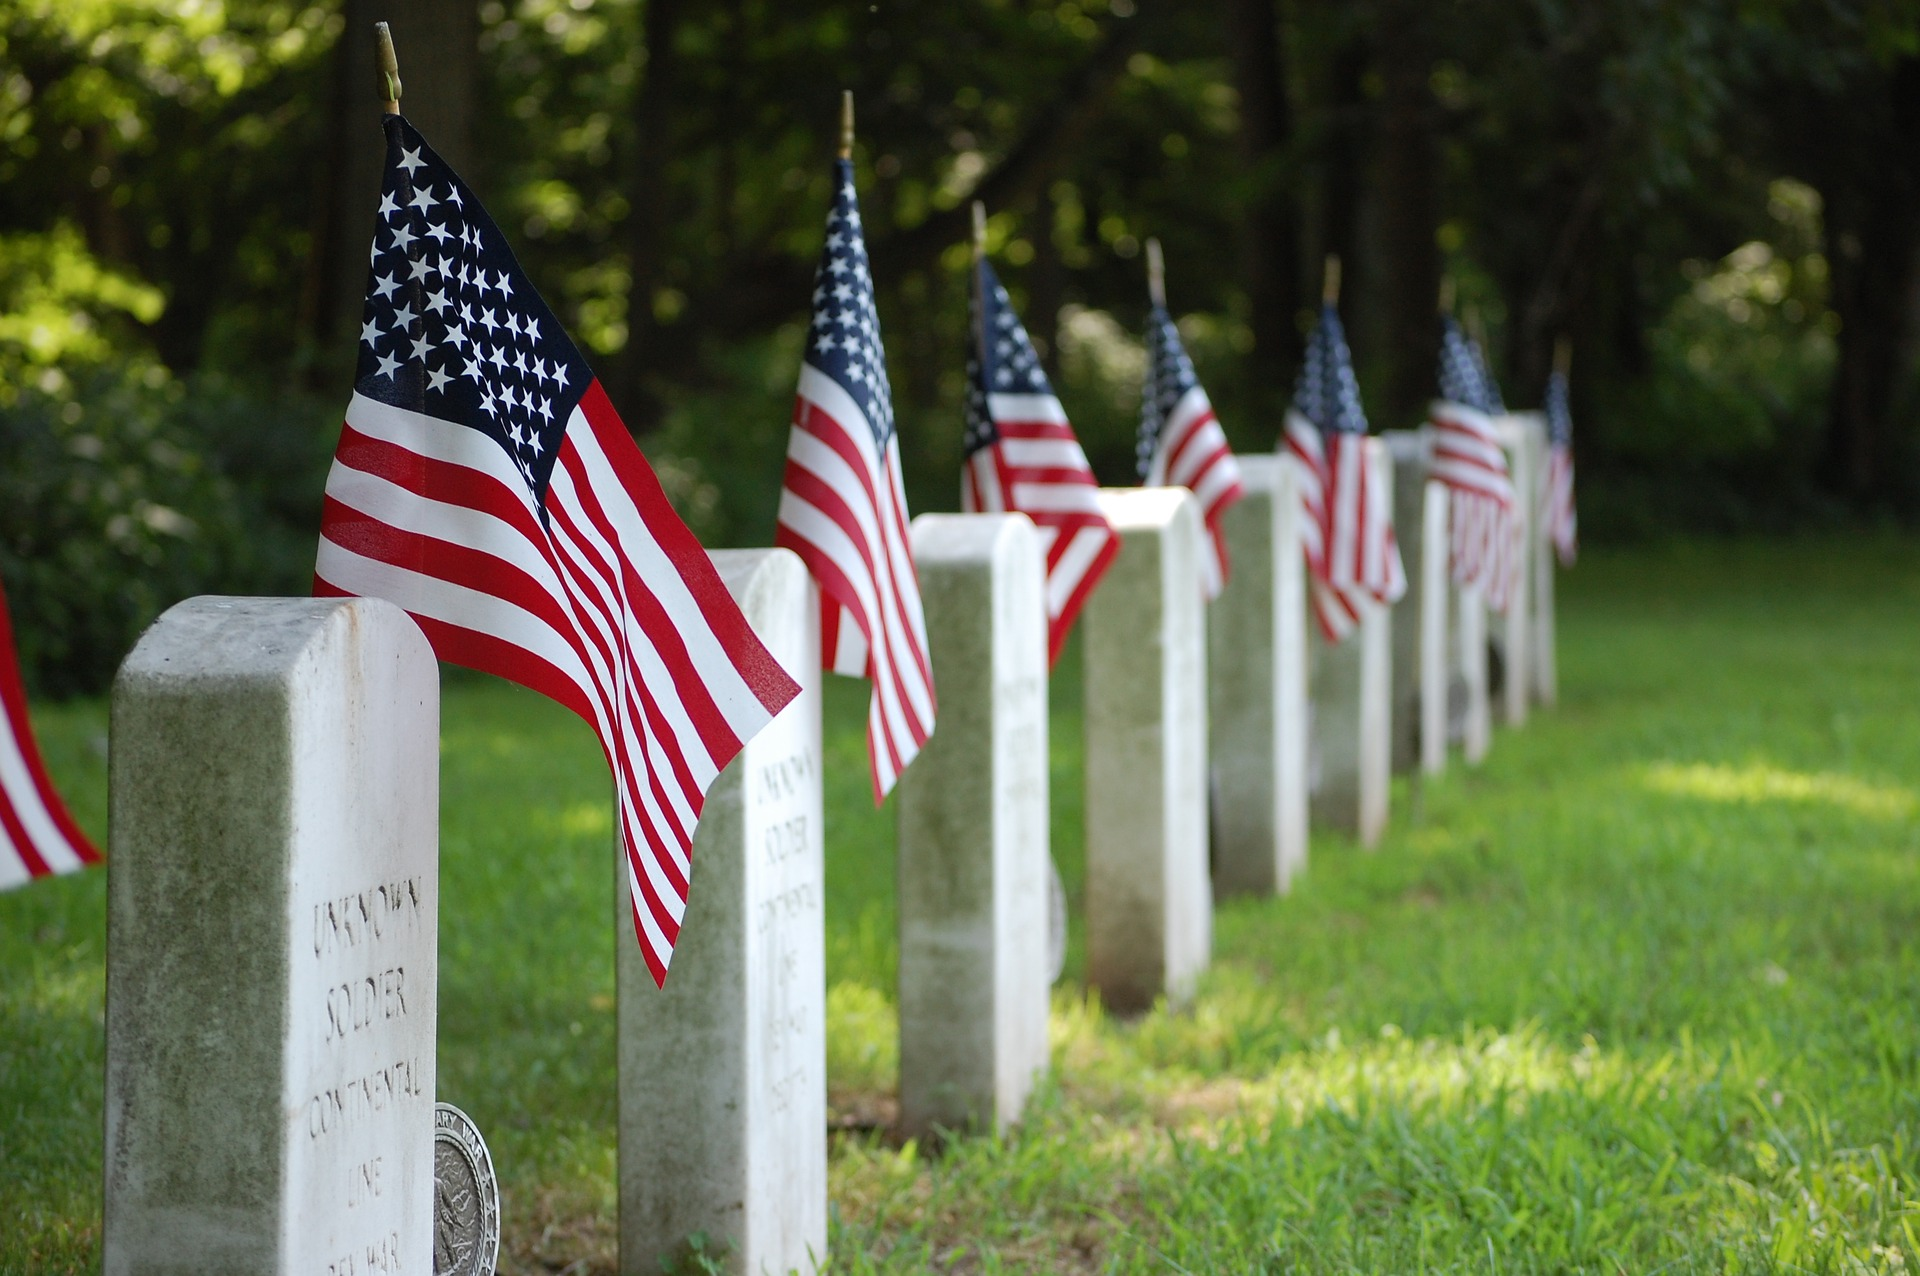 American flags beside veterans graves